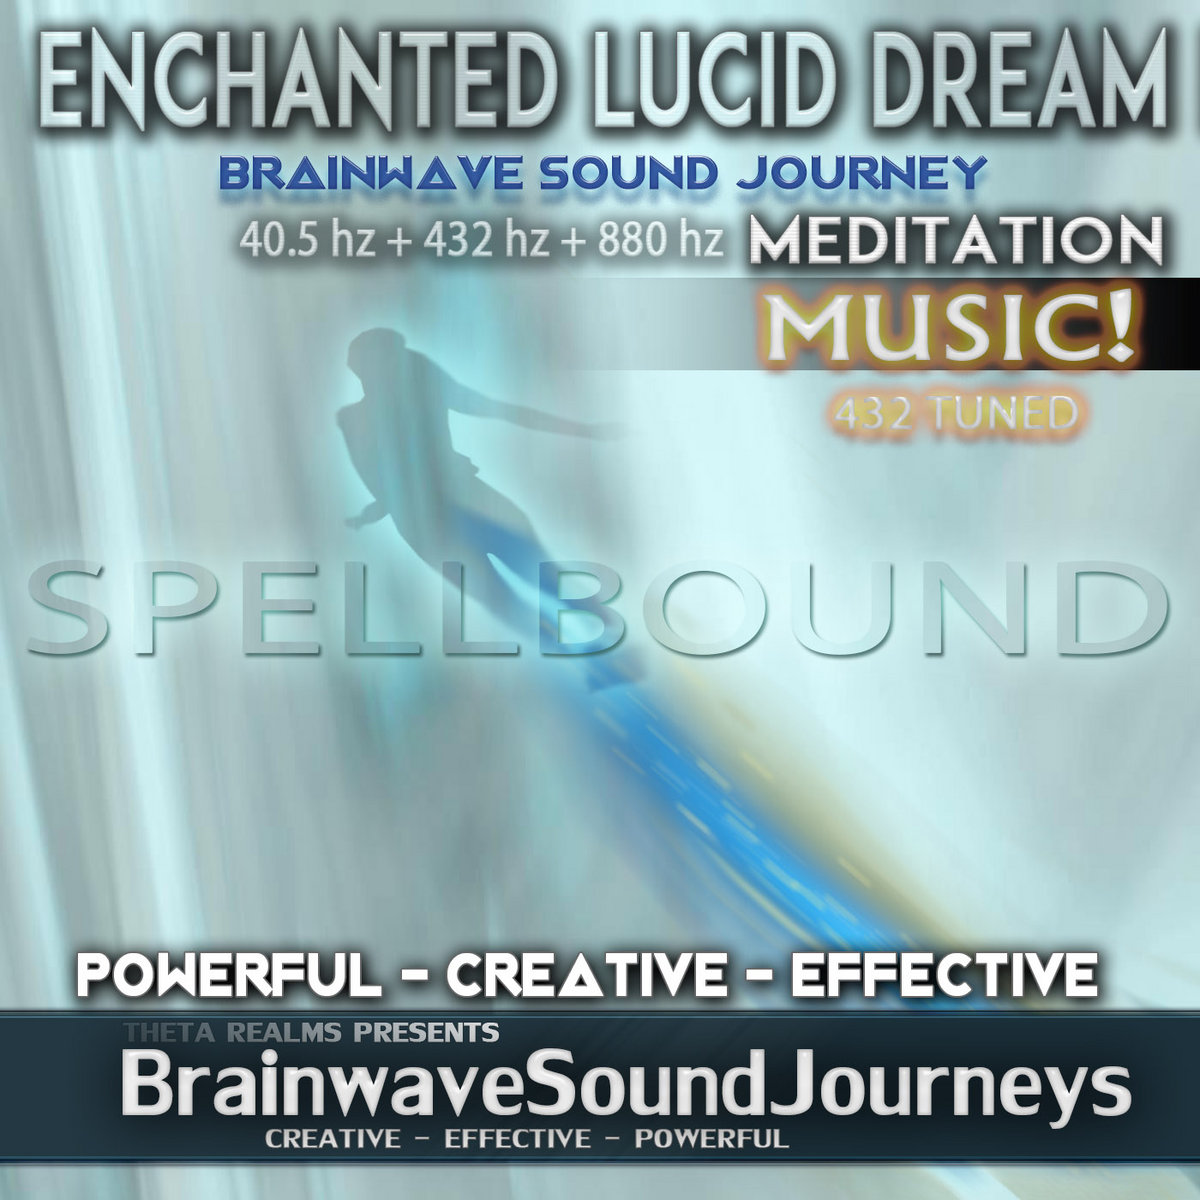 SPELLBOUND - Enchanted Lucid Dreaming Music | Theta Realms